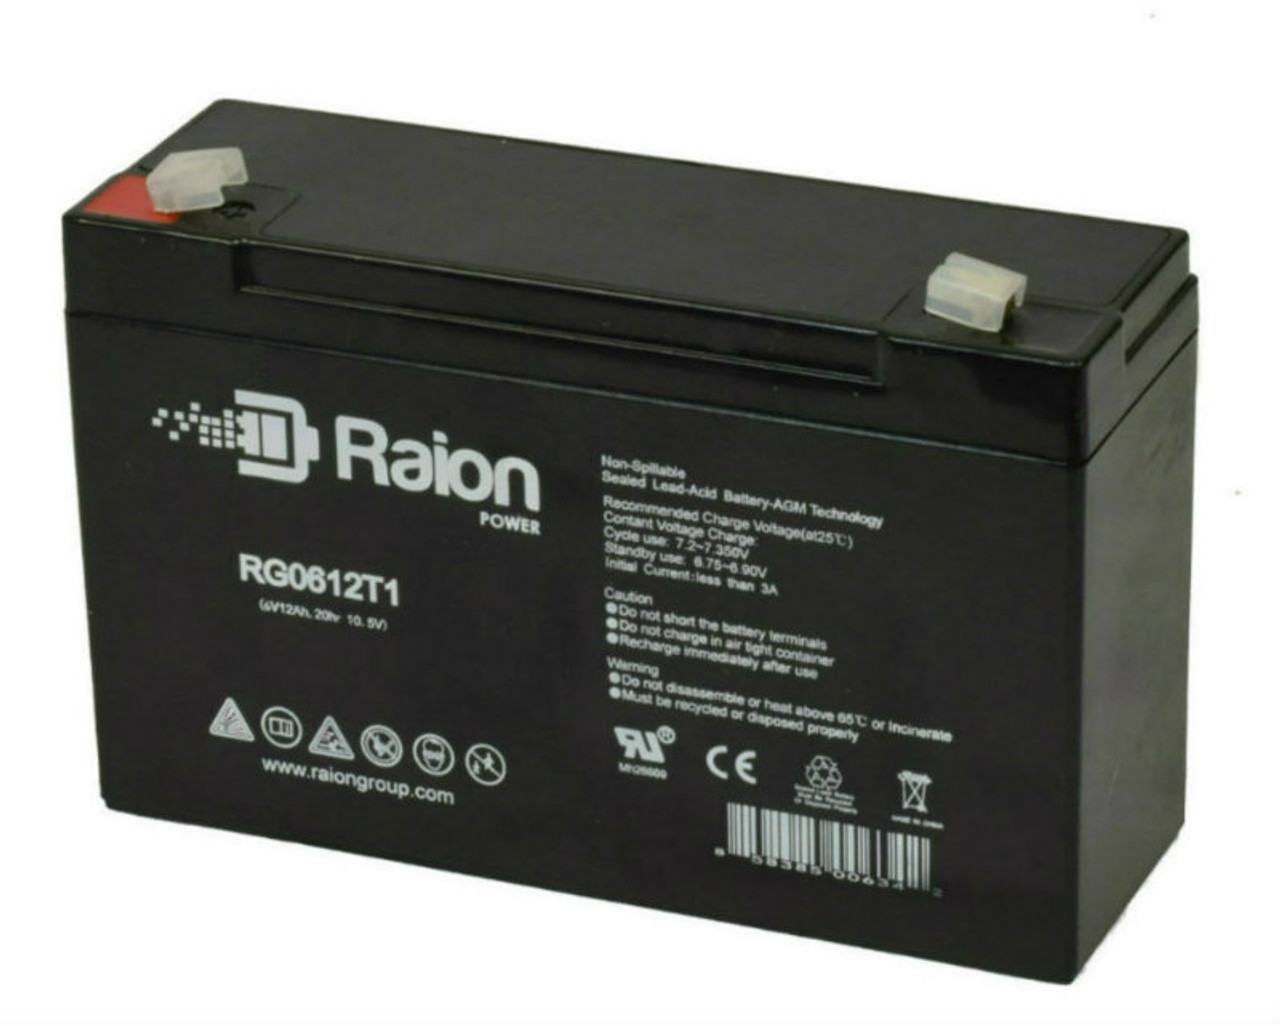 Raion Power RG06120T1 Replacement Battery Pack for Light Alarms 2P12G1 emergency light